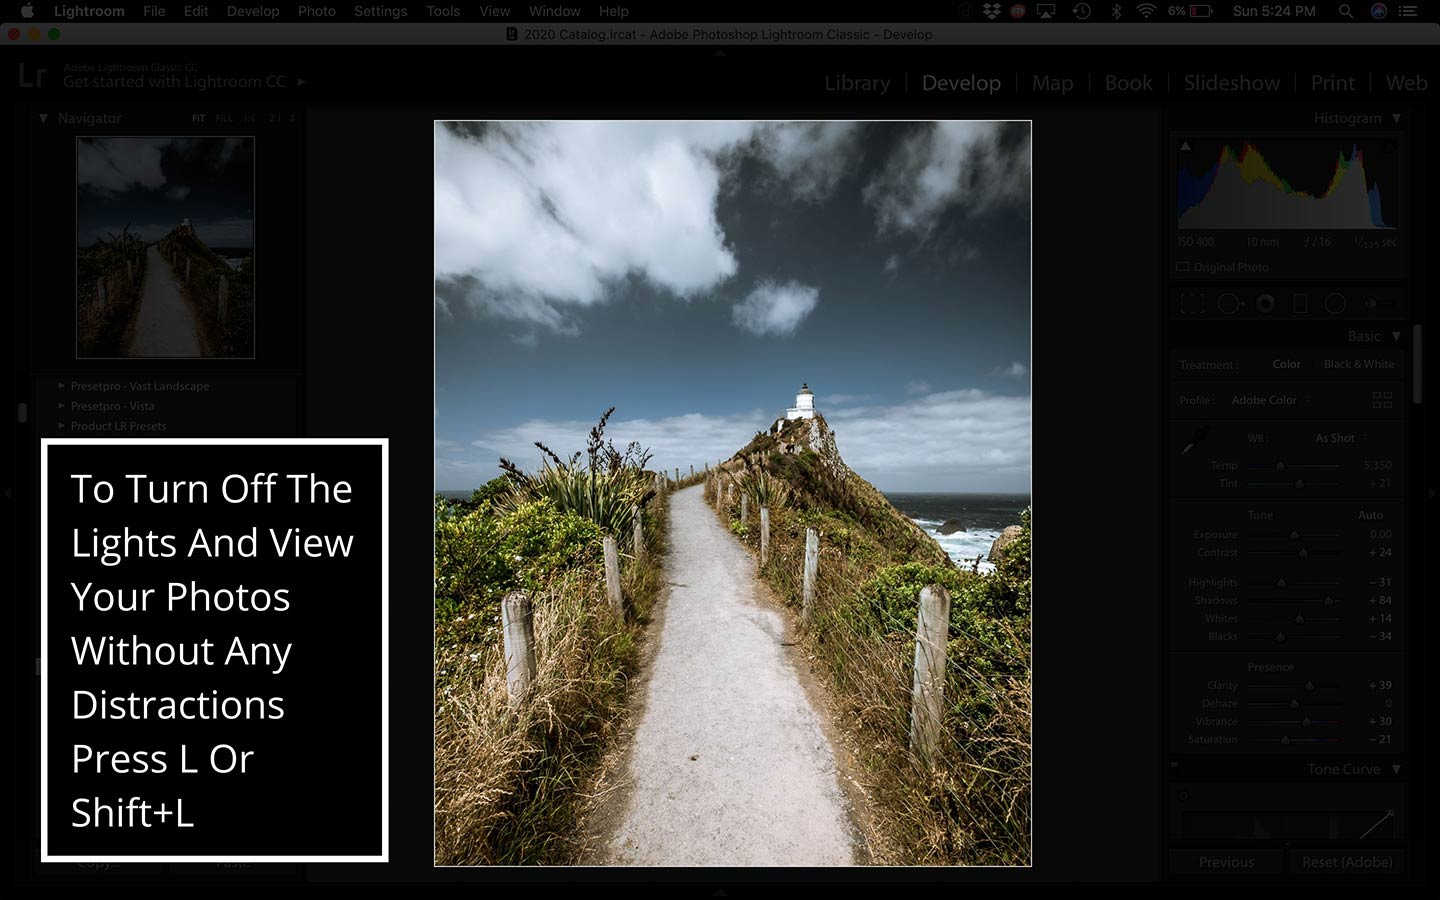 This printscreen from the Lightroom desktop program shows how you can turn the lights off so that you can view your photos without any distractions.